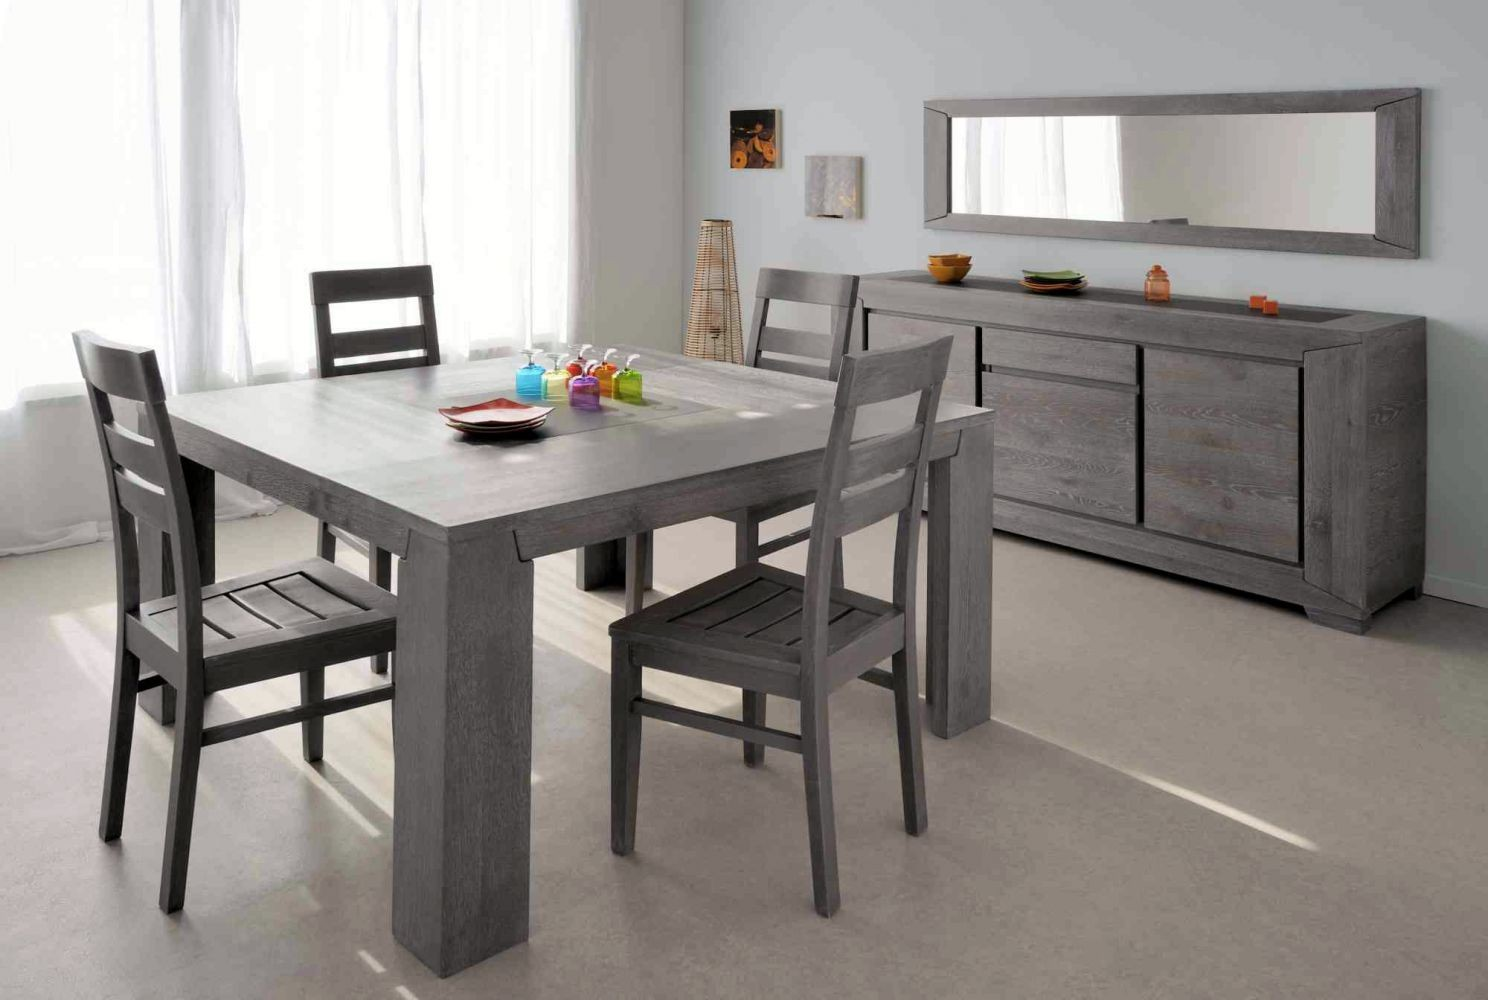 Table cuisine extensible conforama cuisine id es de for Table cuisine conforama